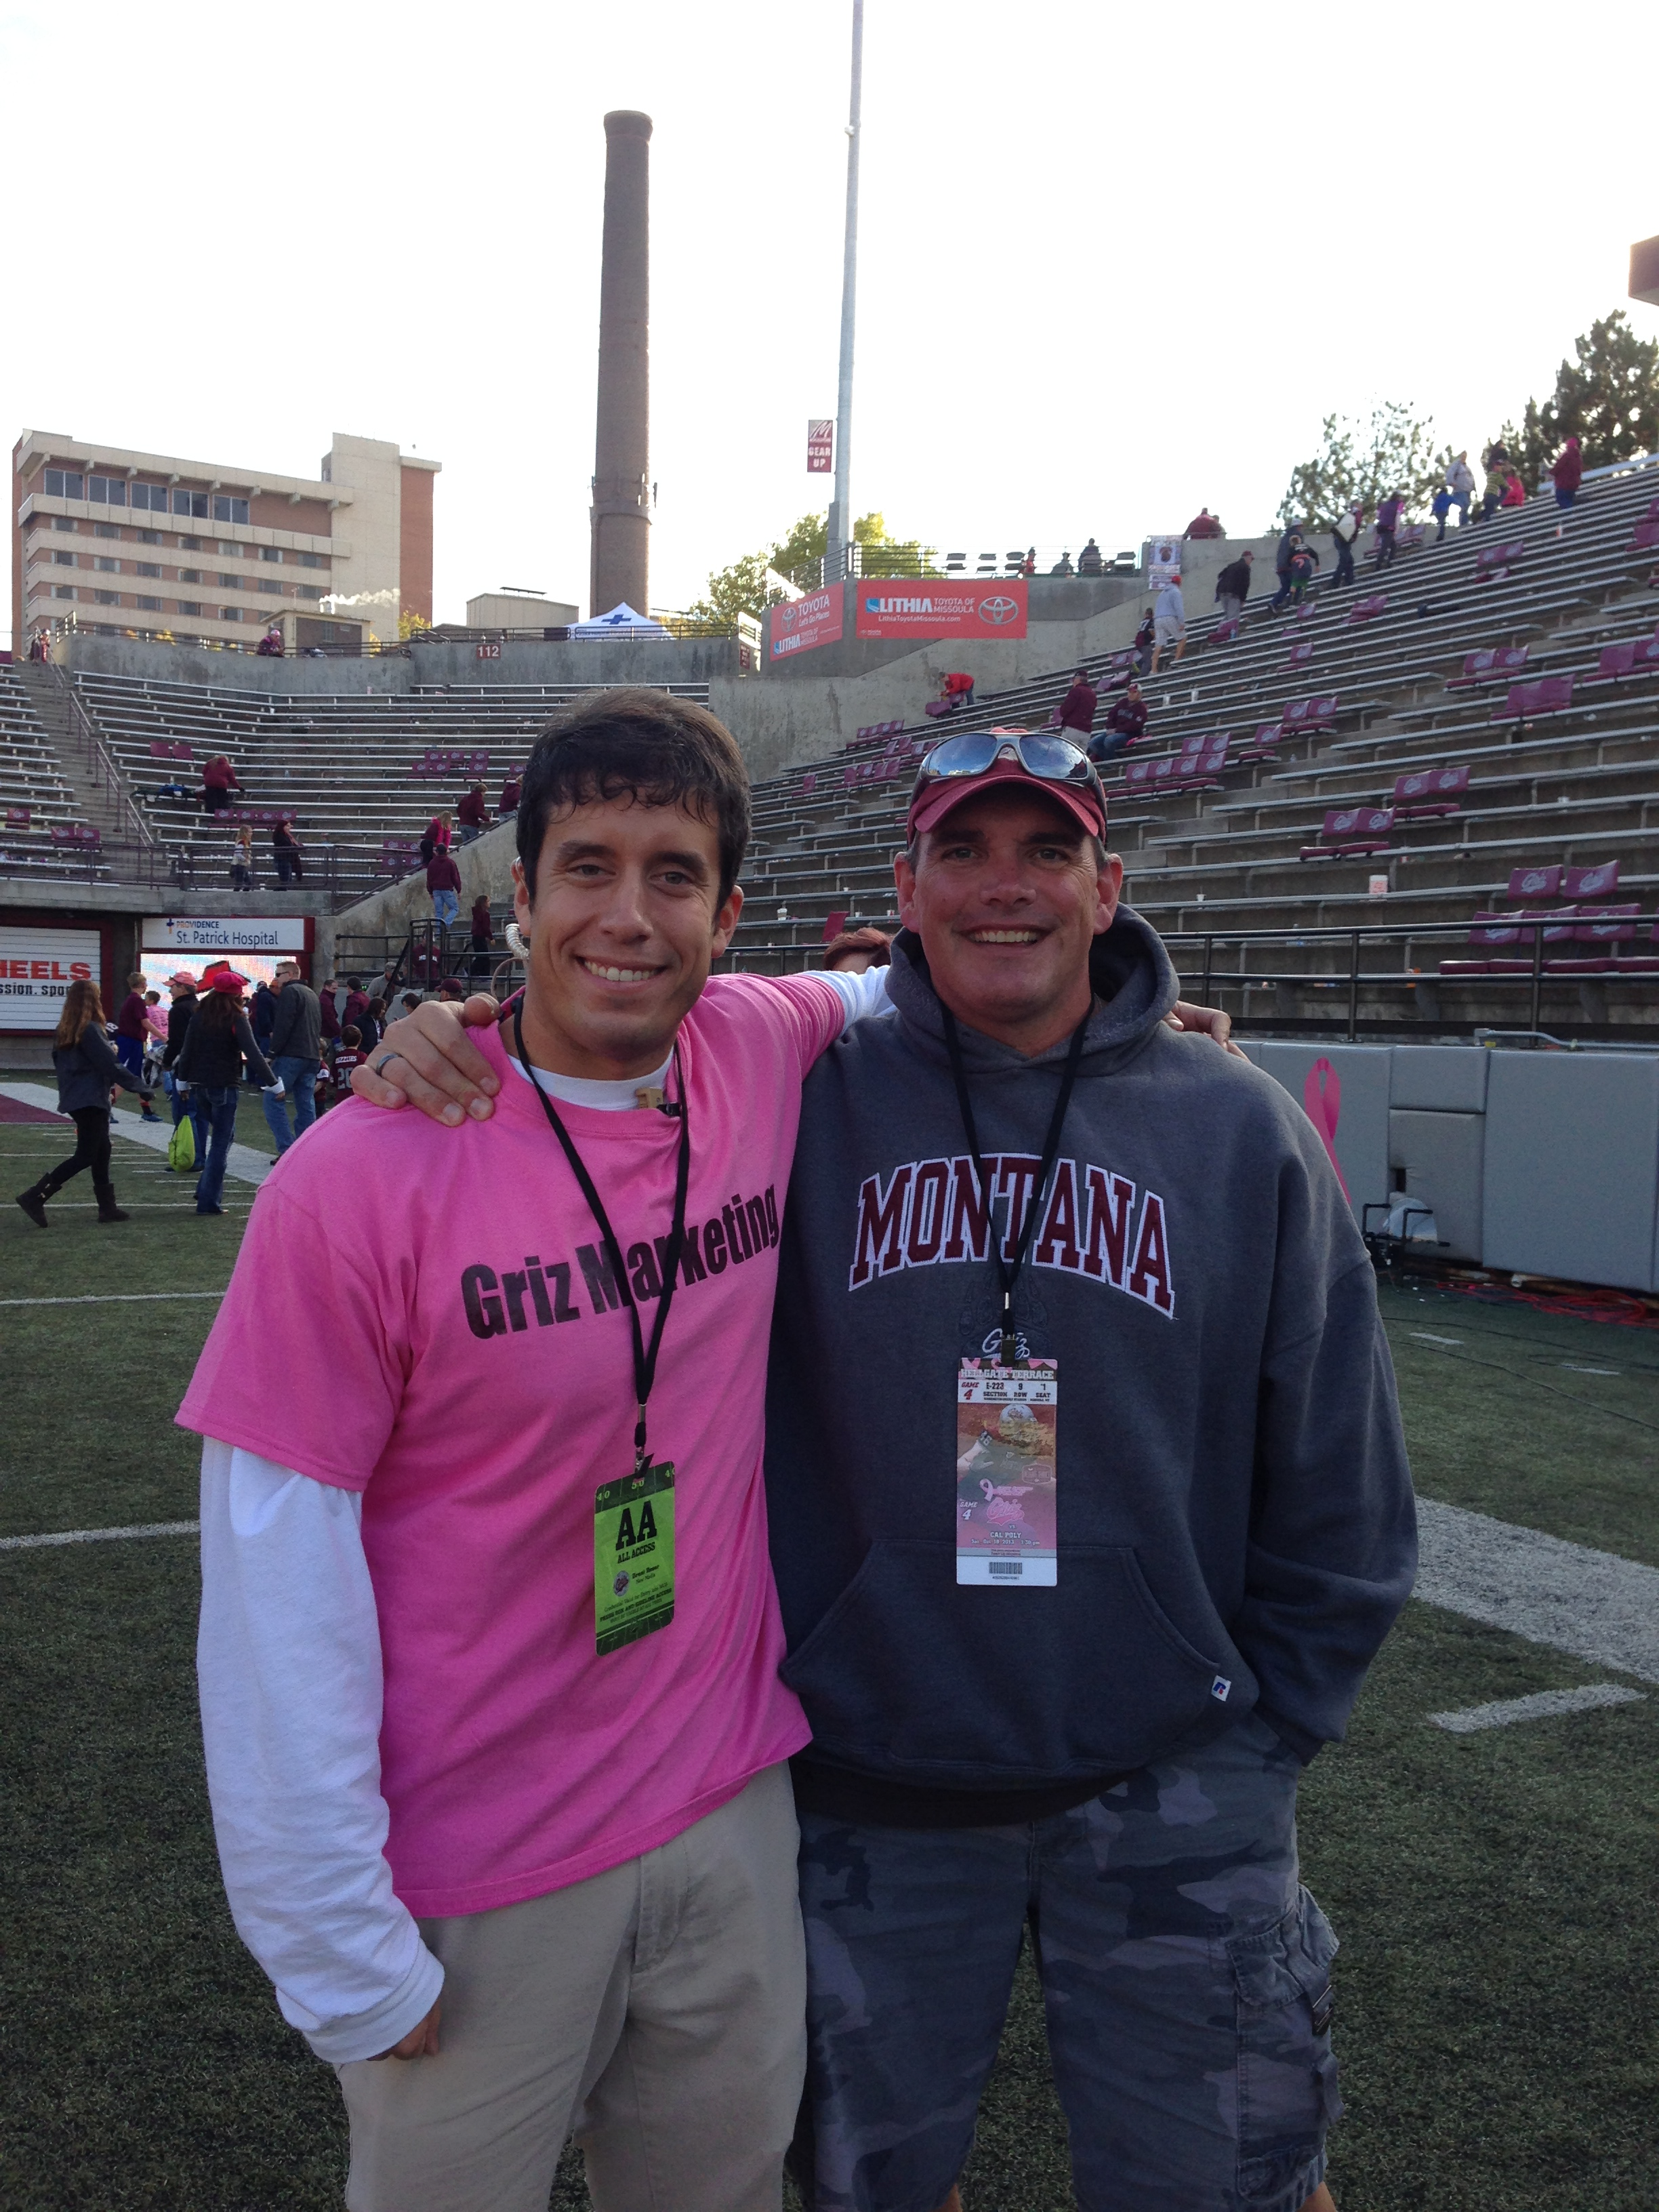 I got to visit with my high school football coach, Sean Carty, after the game.